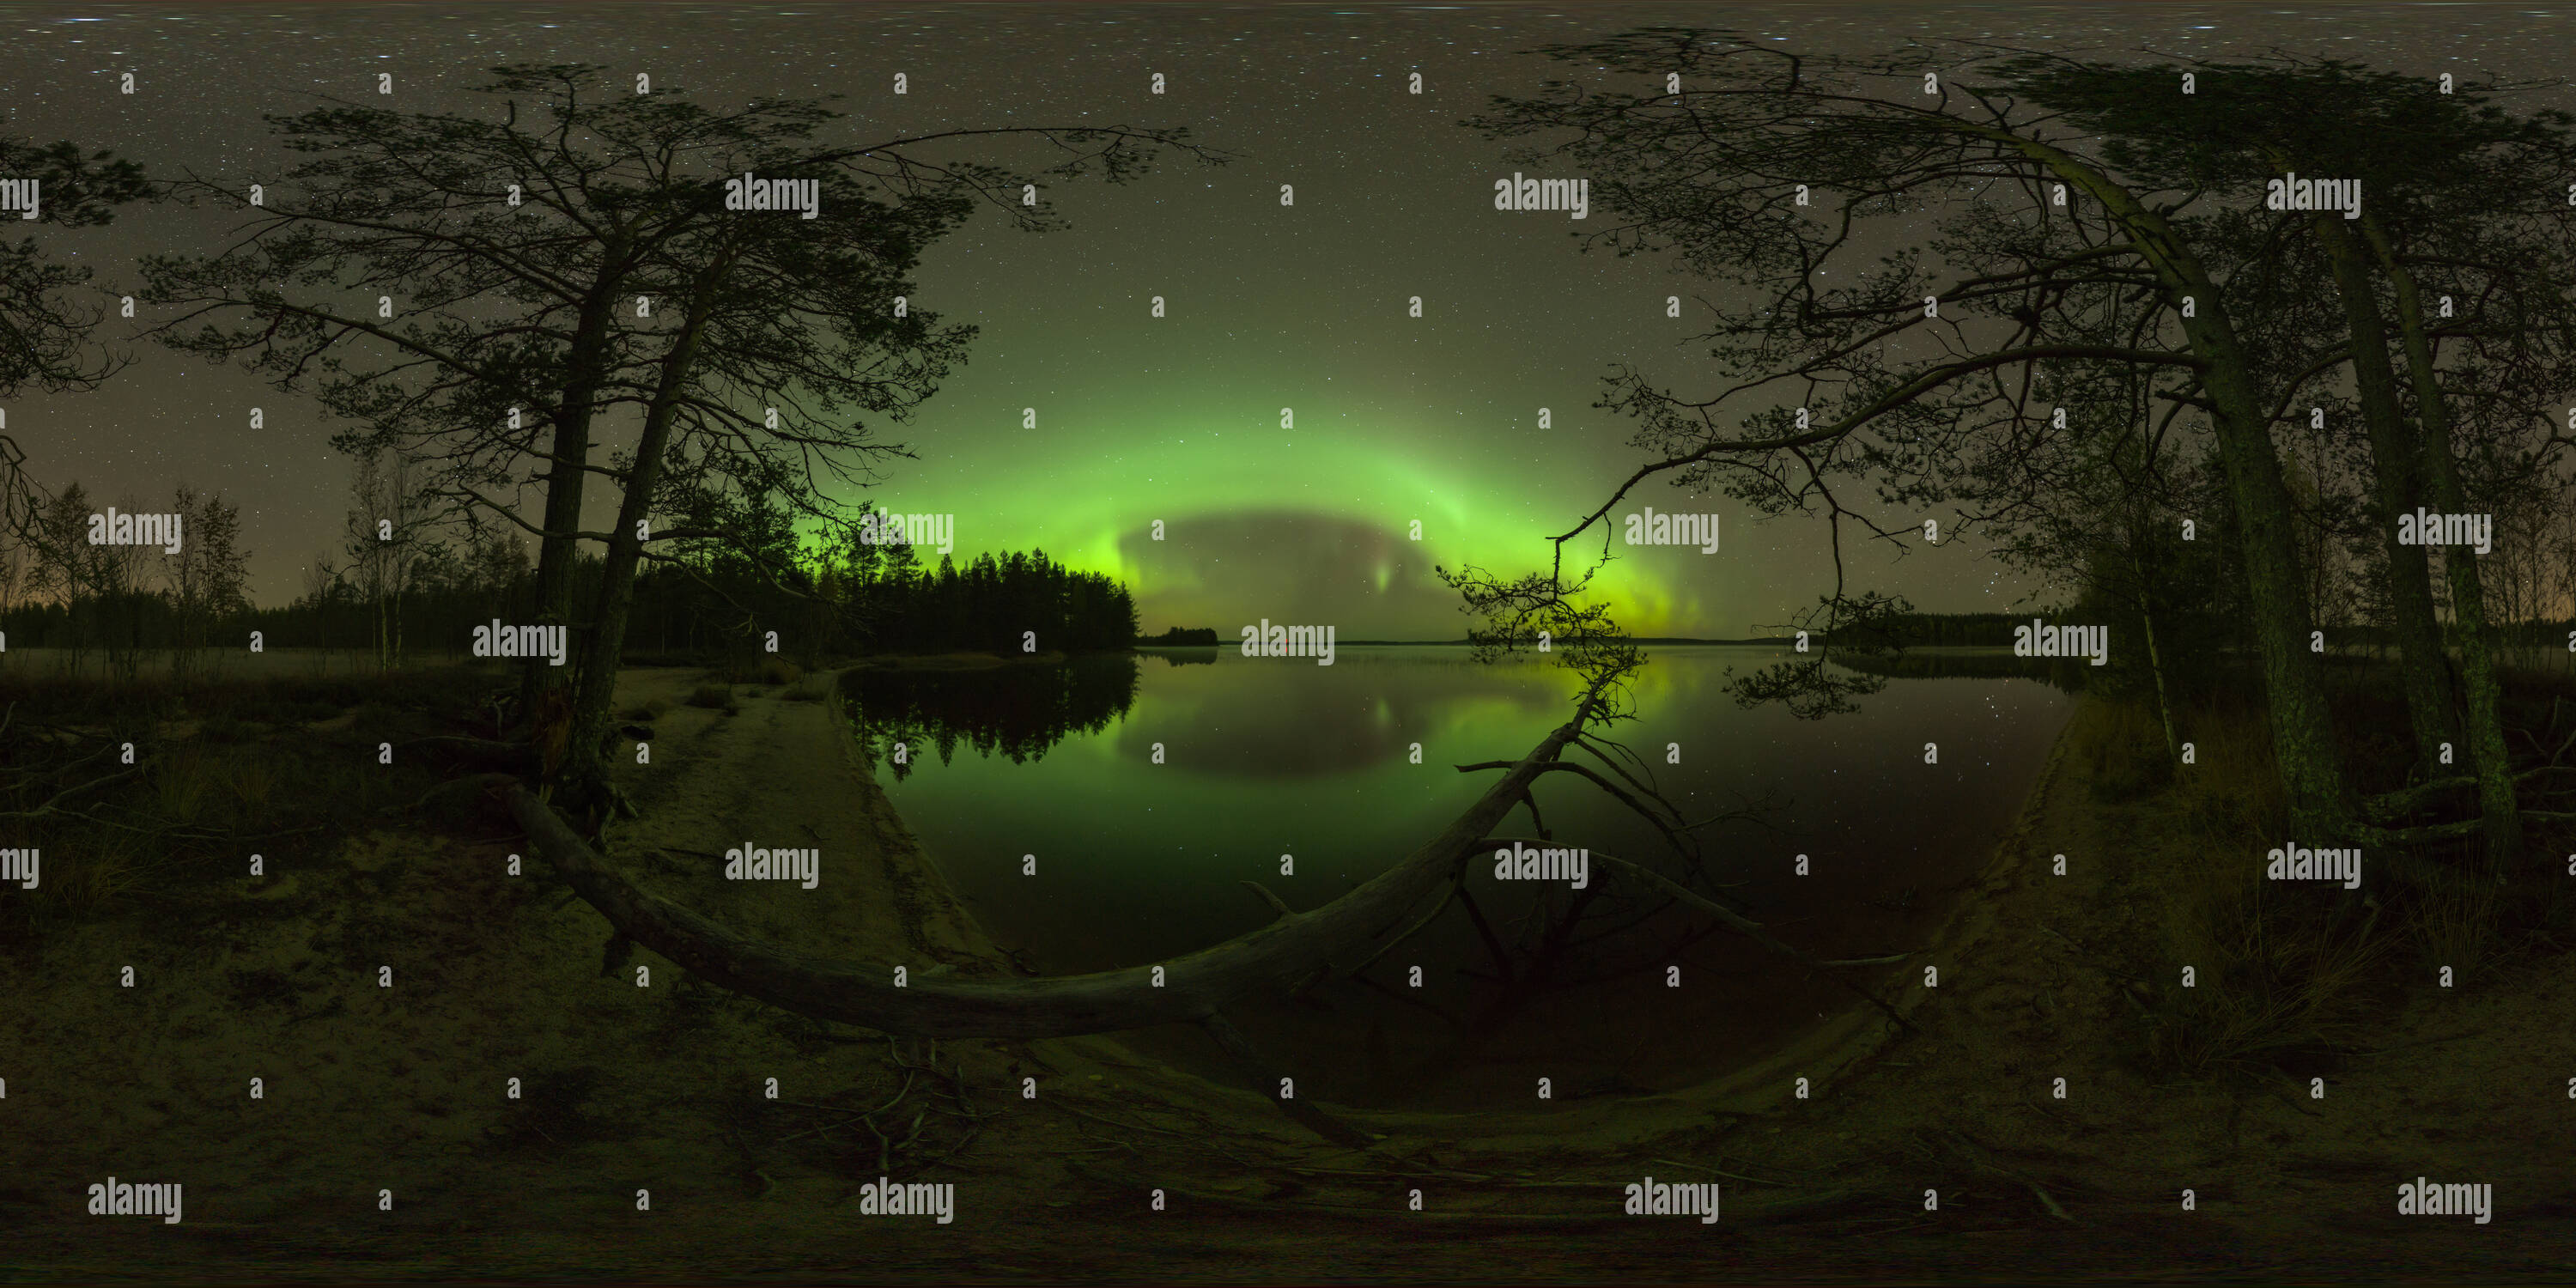 Northern lights reflecting off of mirror-like lake Älänne in Lapinlahti, Finland - Stock Image